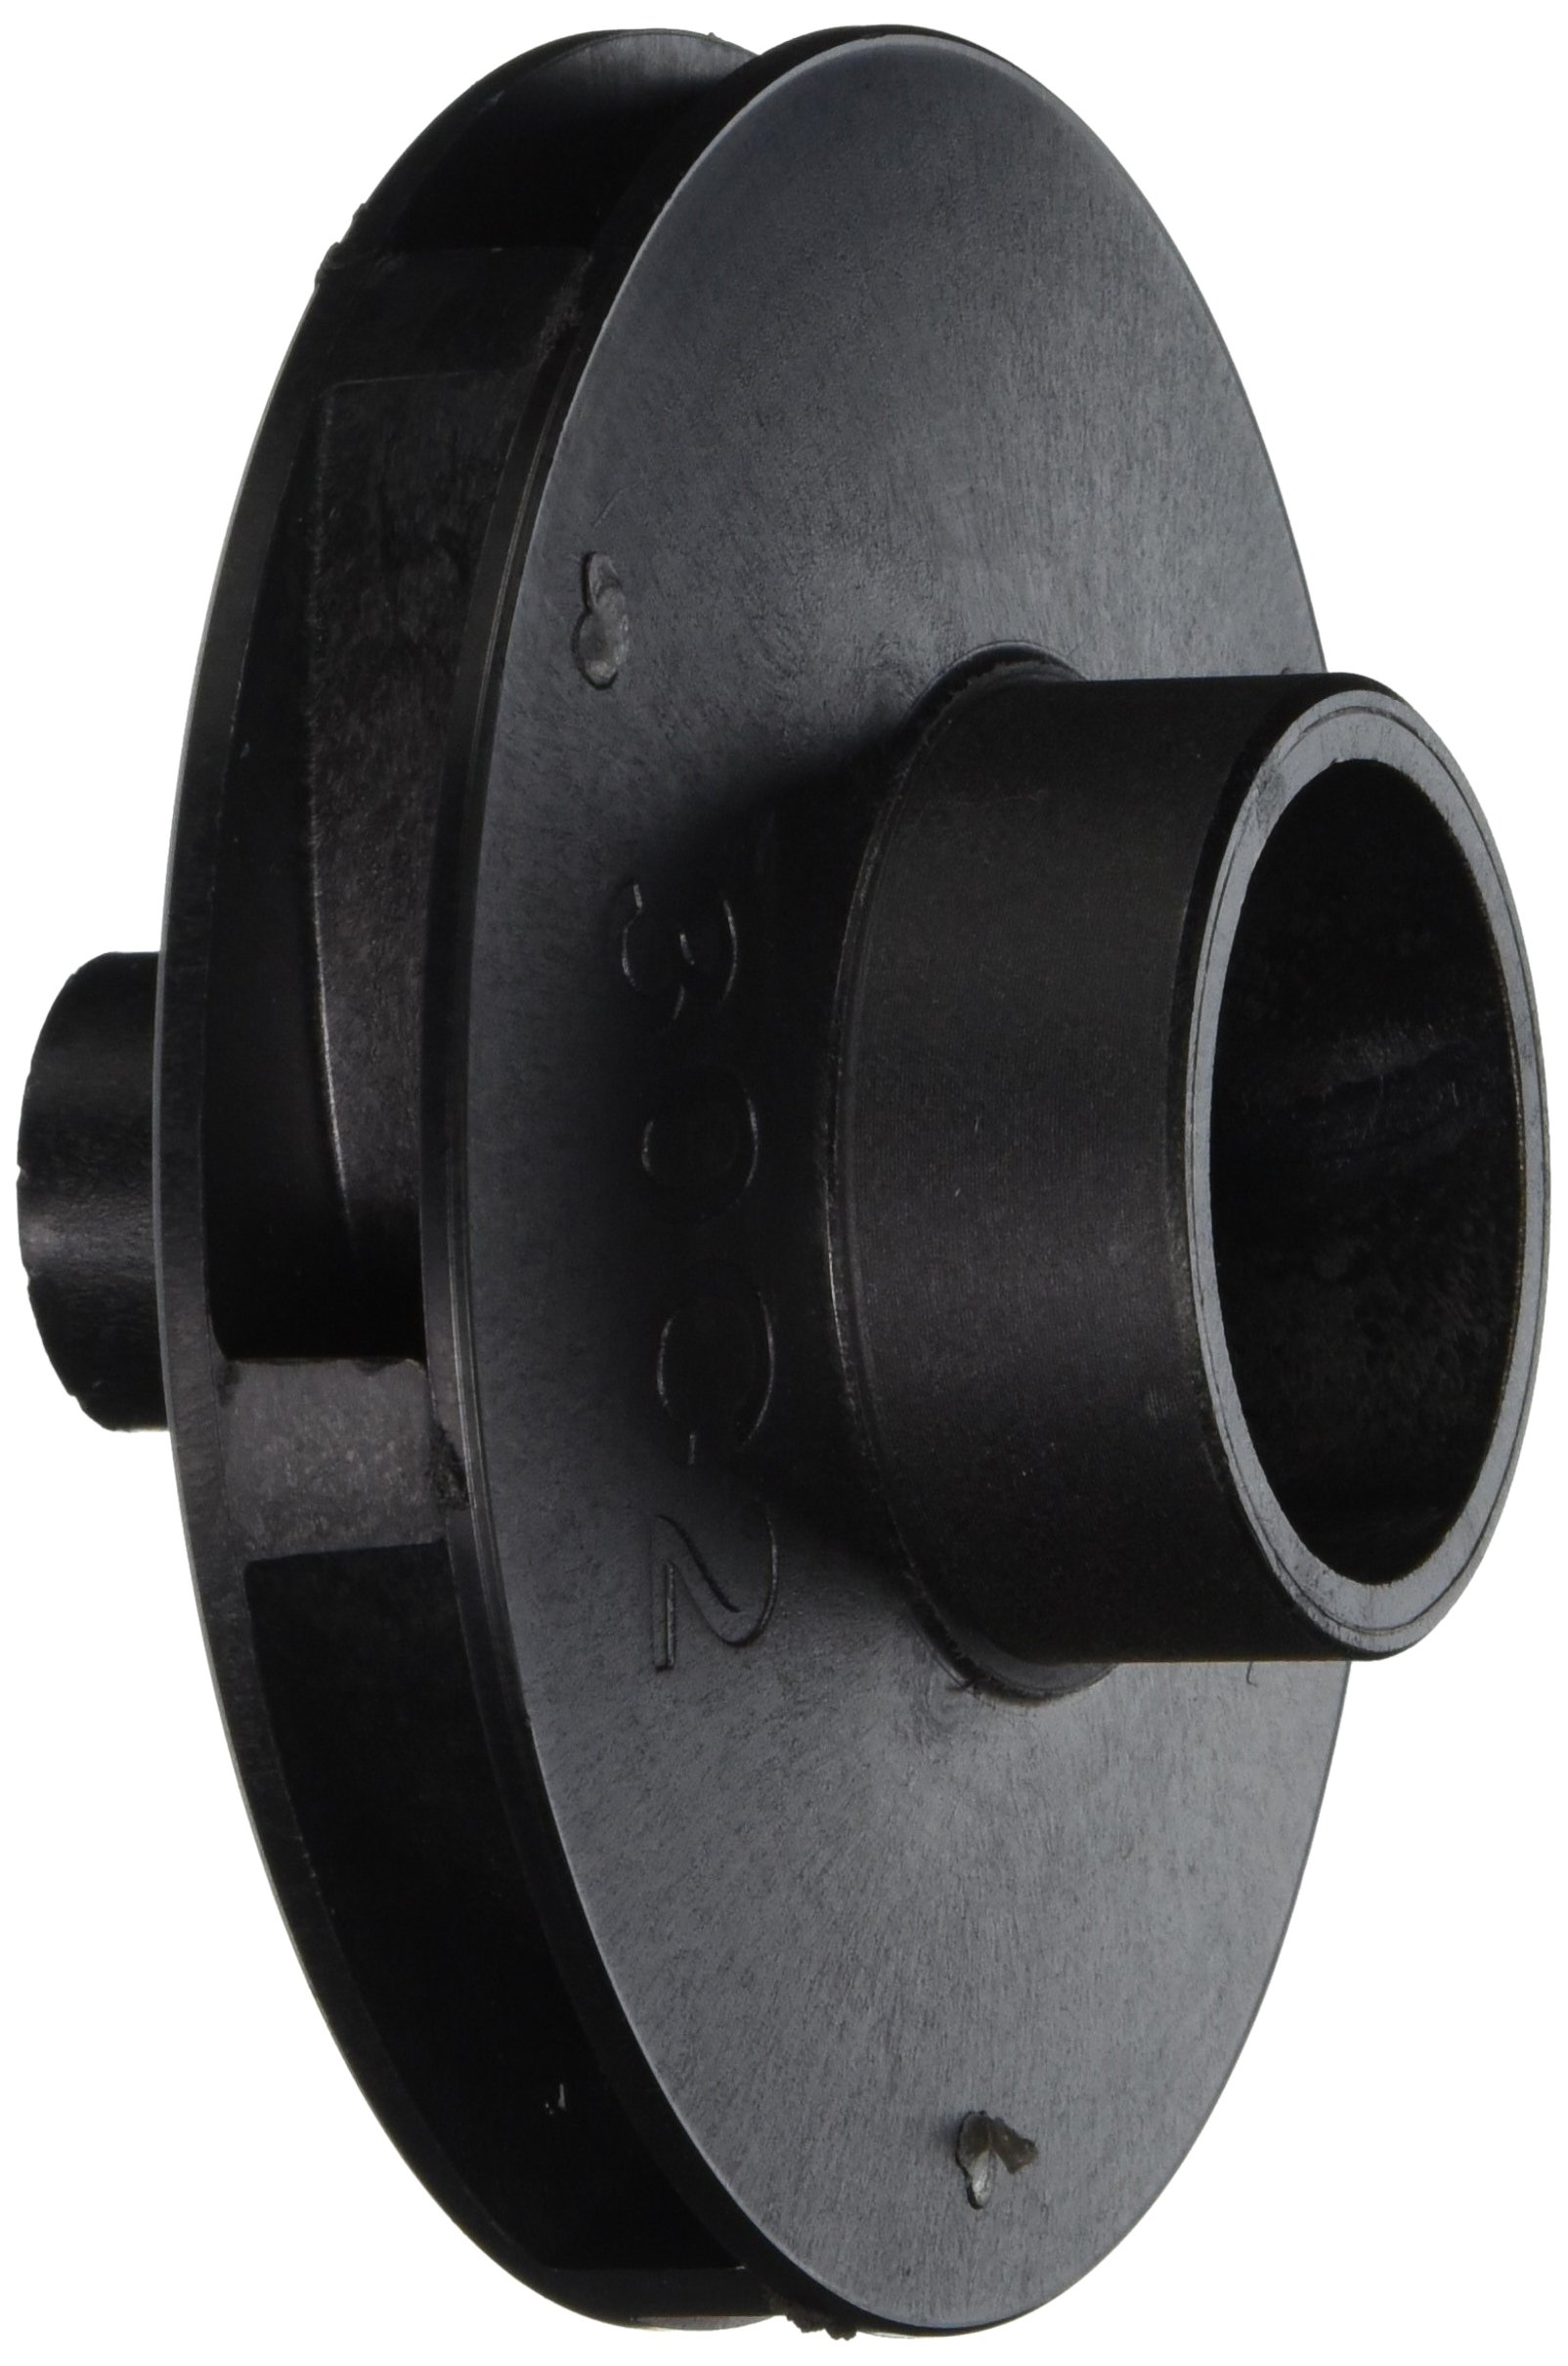 Hayward SPX3230CU 3-Horsepower Impeller with Screw Replacement for Hayward Tristar 120 Gpm Waterfall Pump